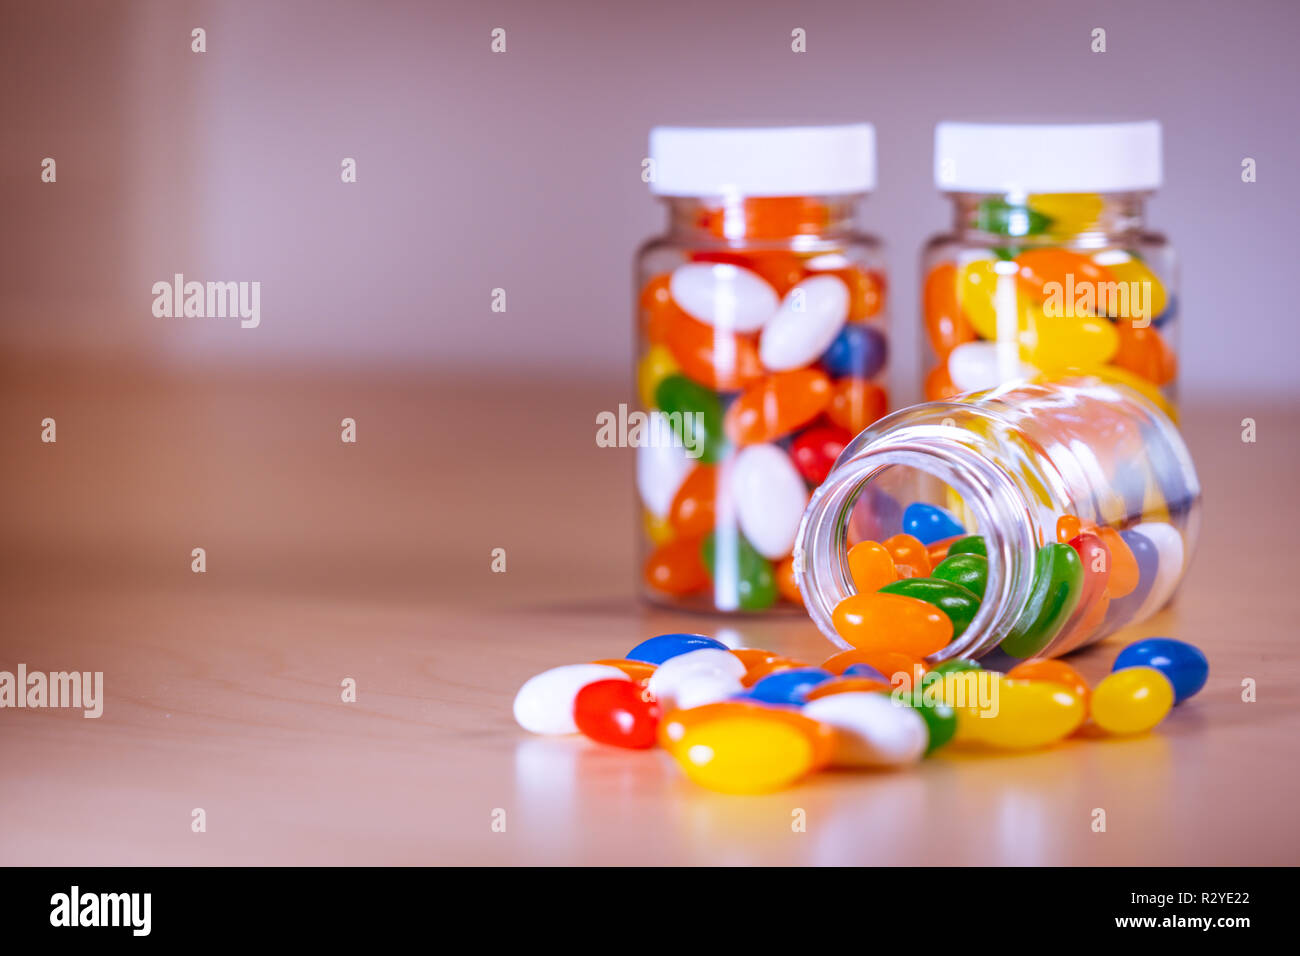 Multi-colored pills spilling out of a pill bottle against a blurry background - Stock Image